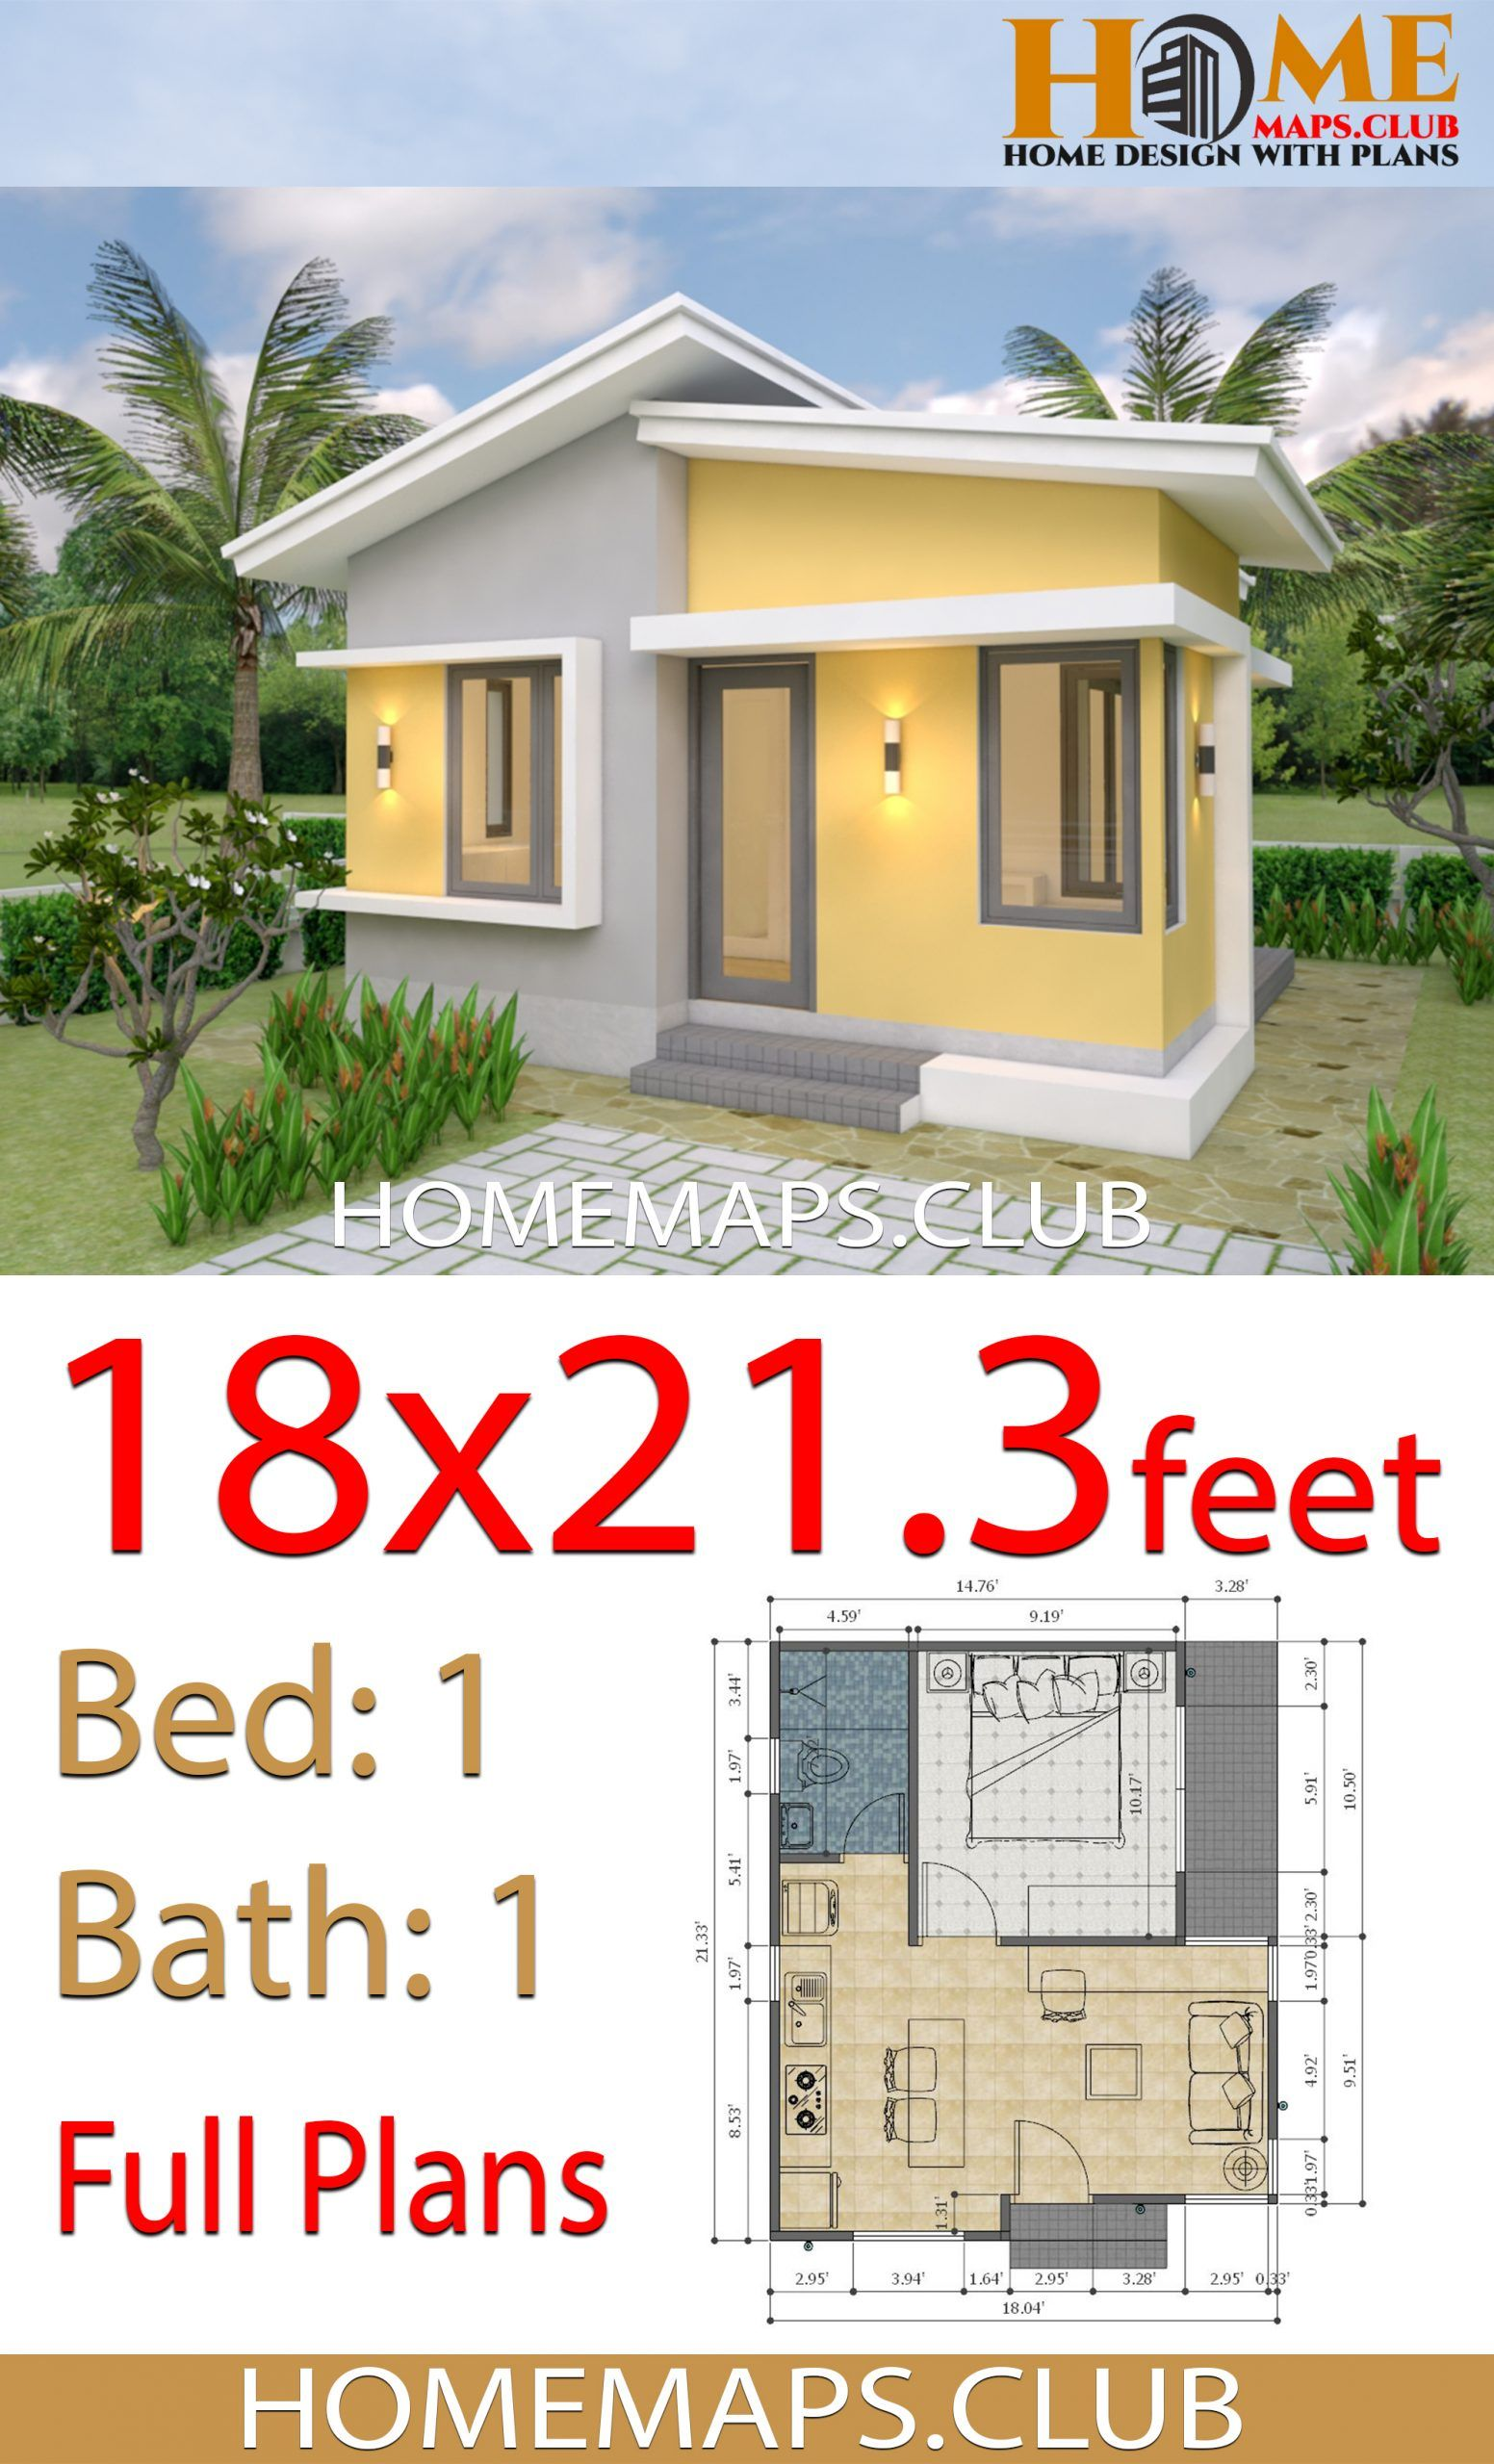 House Plans 18x21 3 Feet With One Bedroom Shed Roof Small House Design Plans Small Pool Houses House Plans